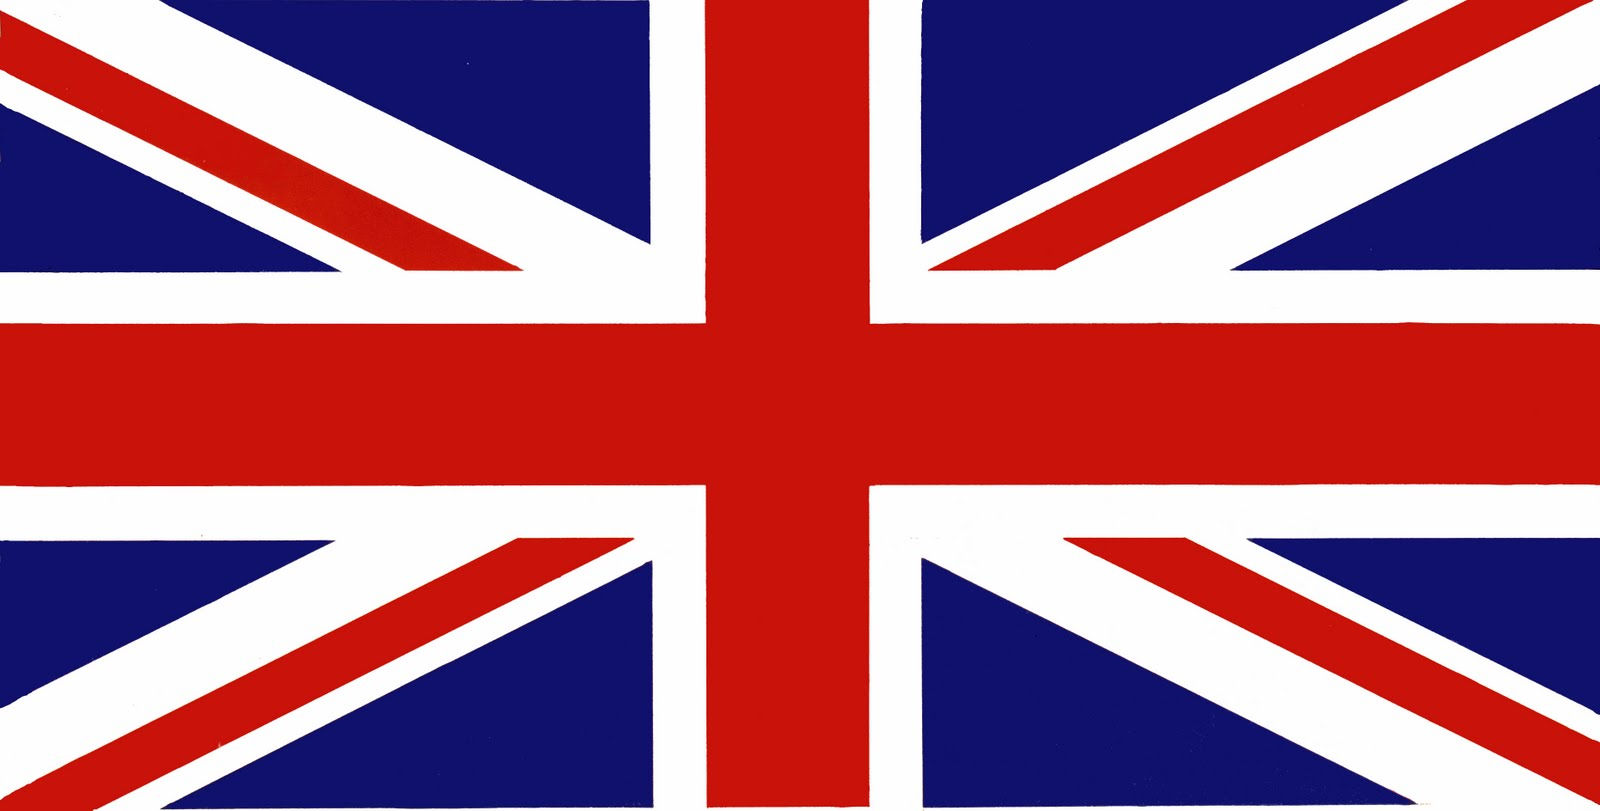 Vintage Clip Art u2013 British Flag